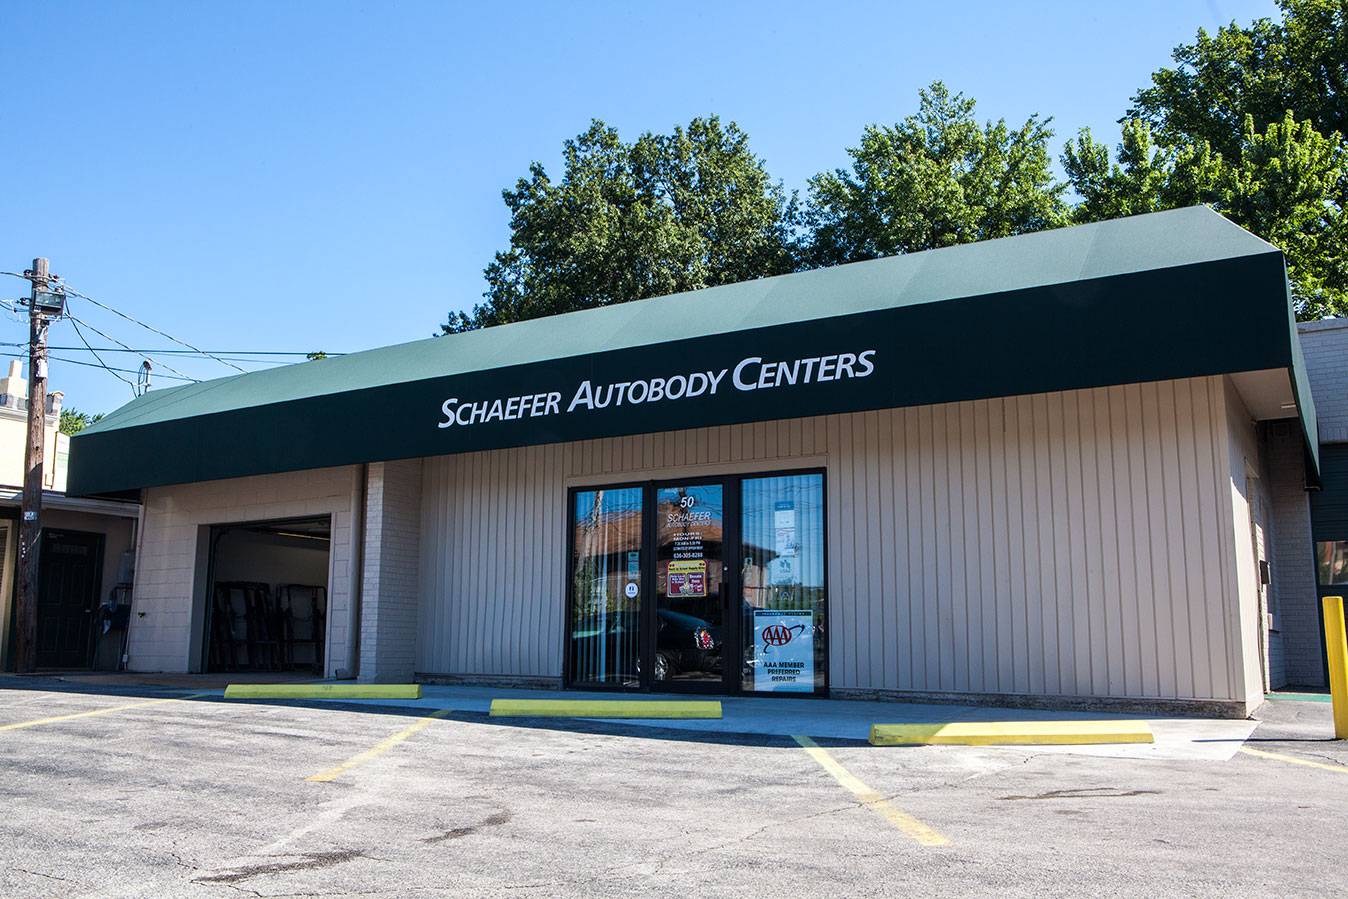 webster groves schaefer auotobody centers' building exterior